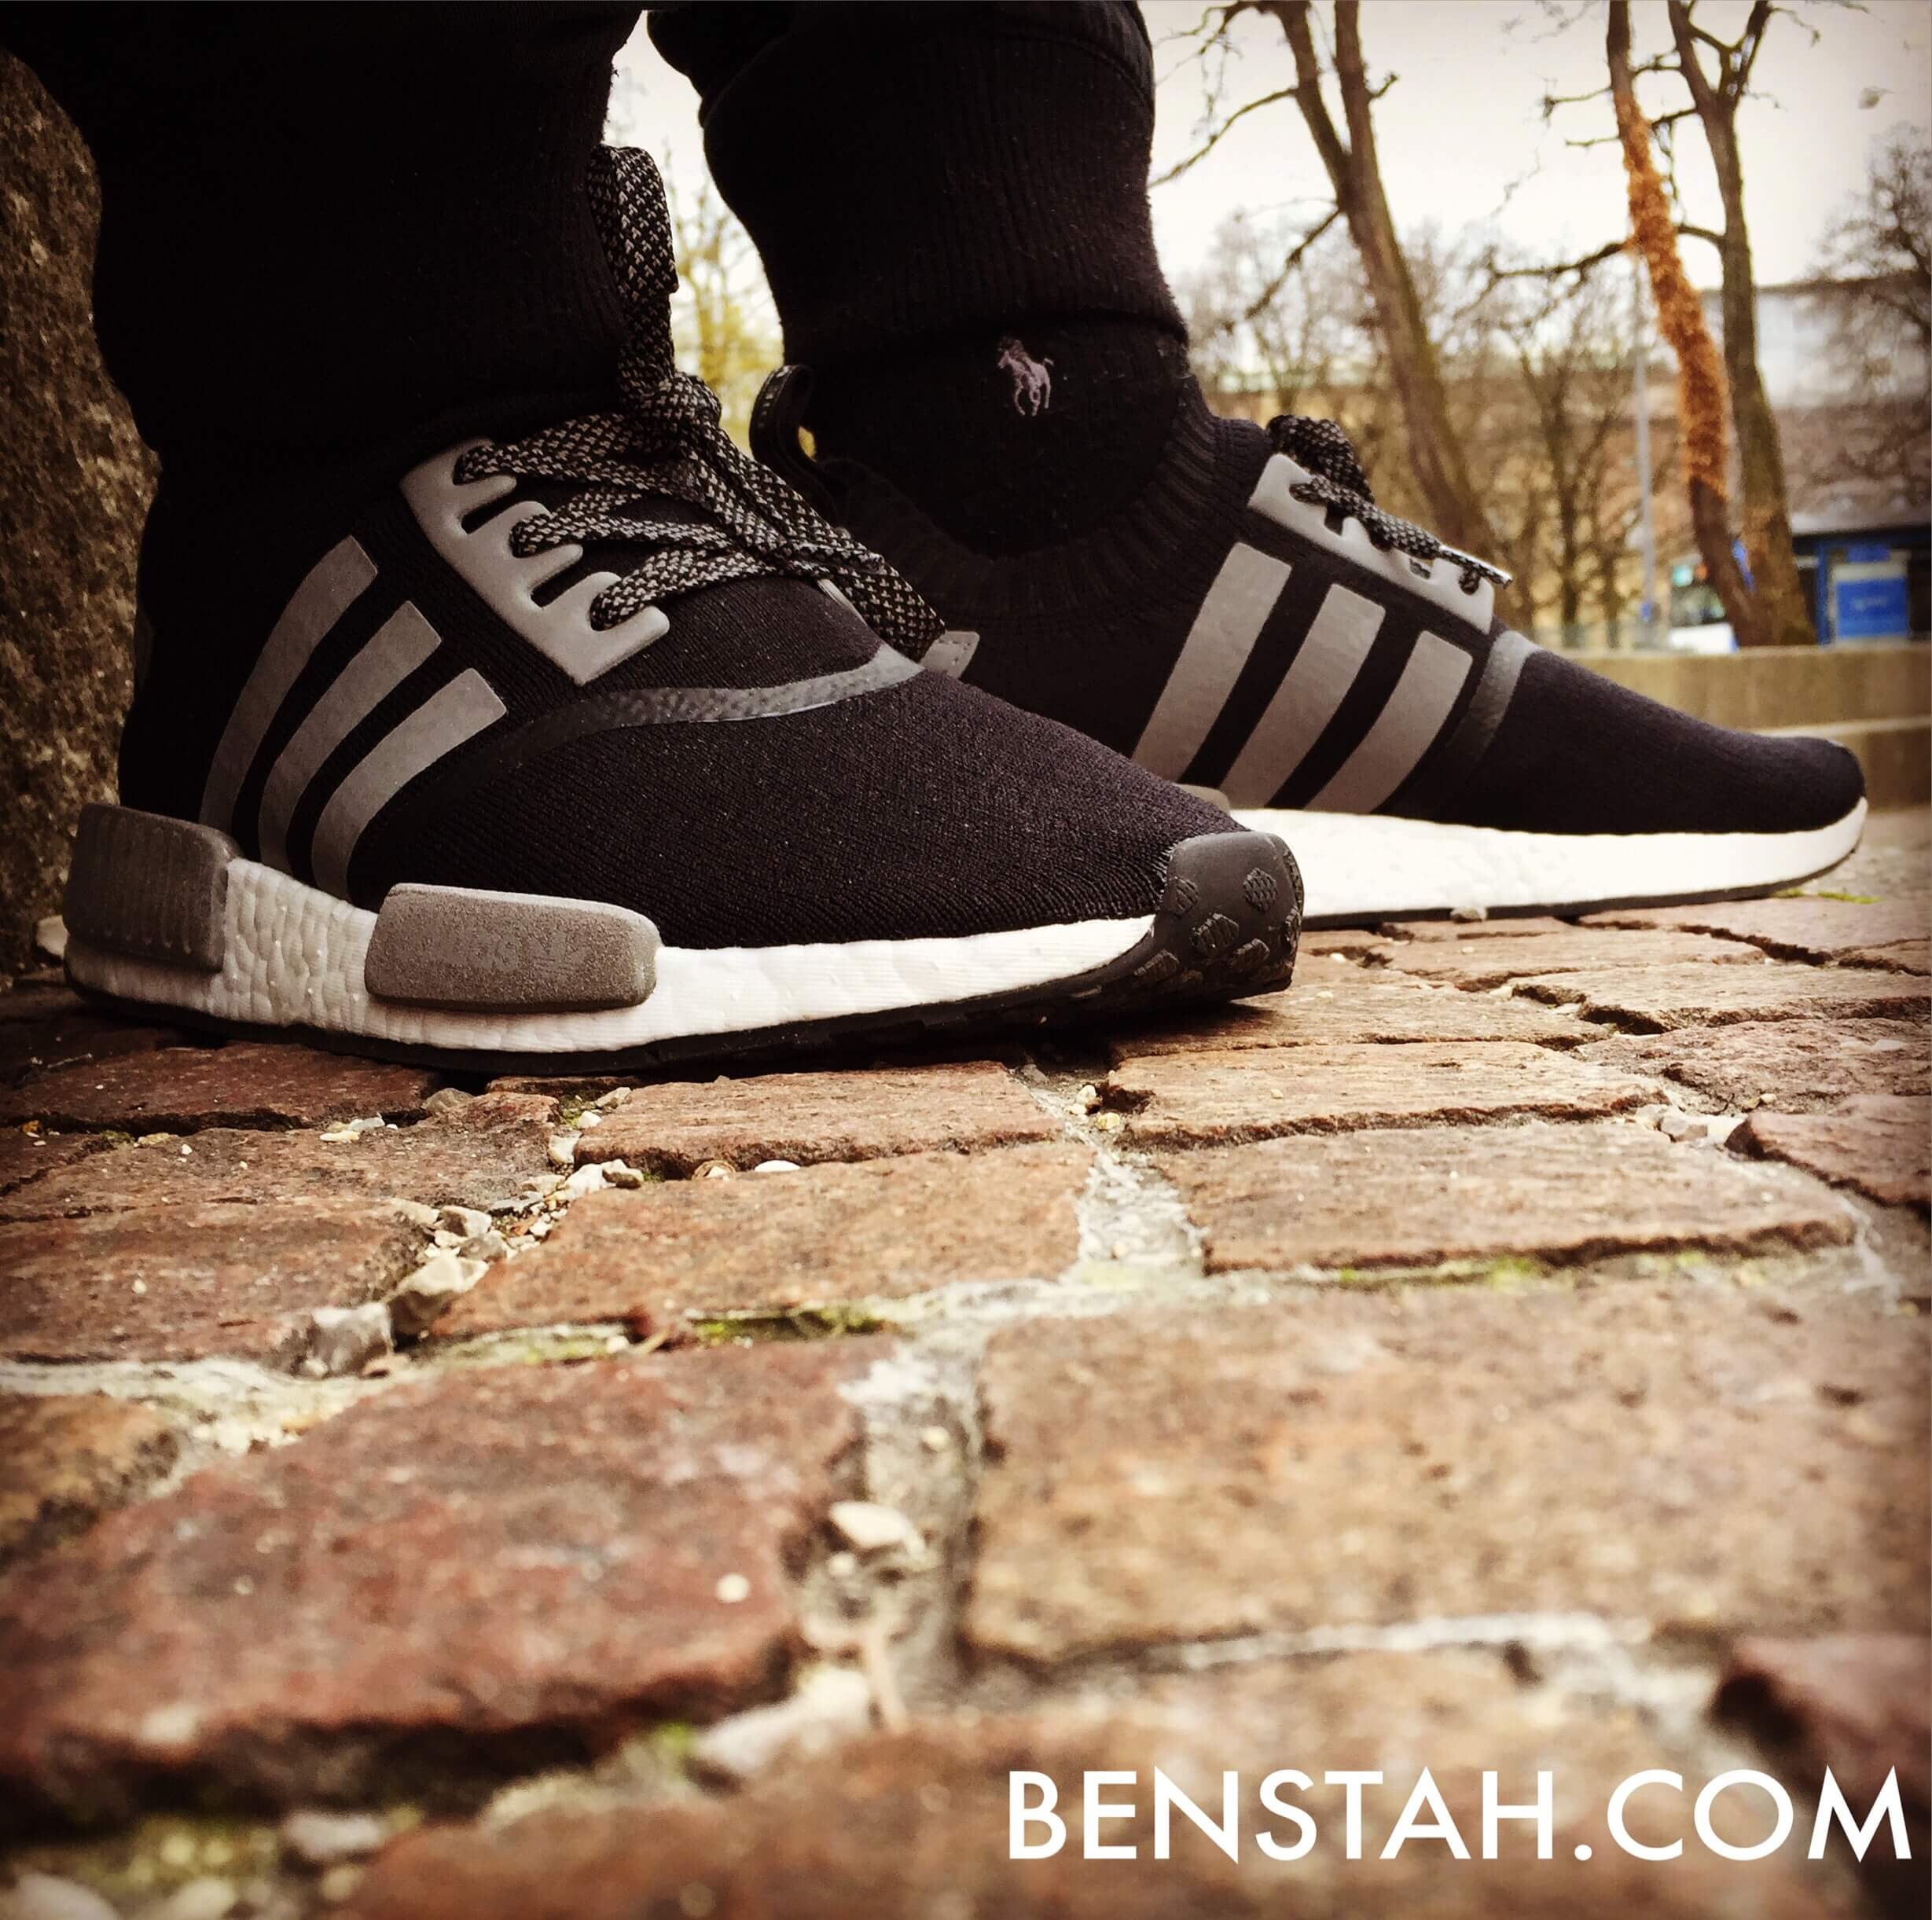 Adidas-NMD-Key-City-Activation-Alt-View-Benstah